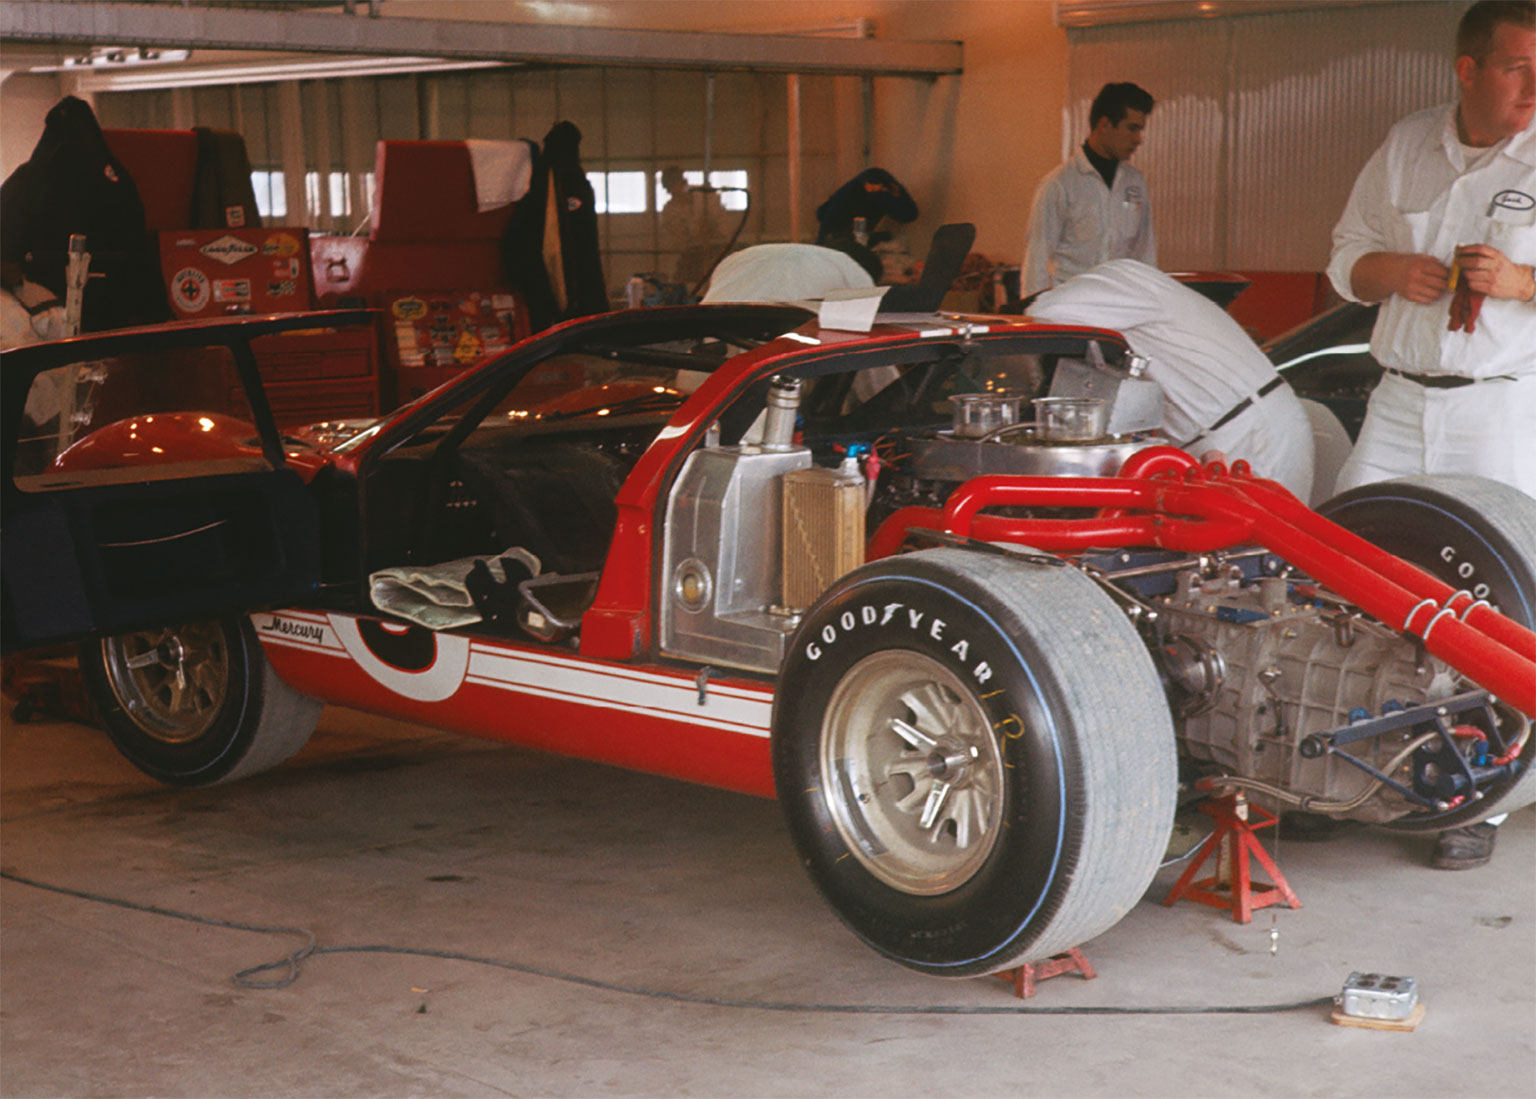 Pole position Foyt/Gurney Ford MkII failed to last the 24 hours, due to a broken con rod